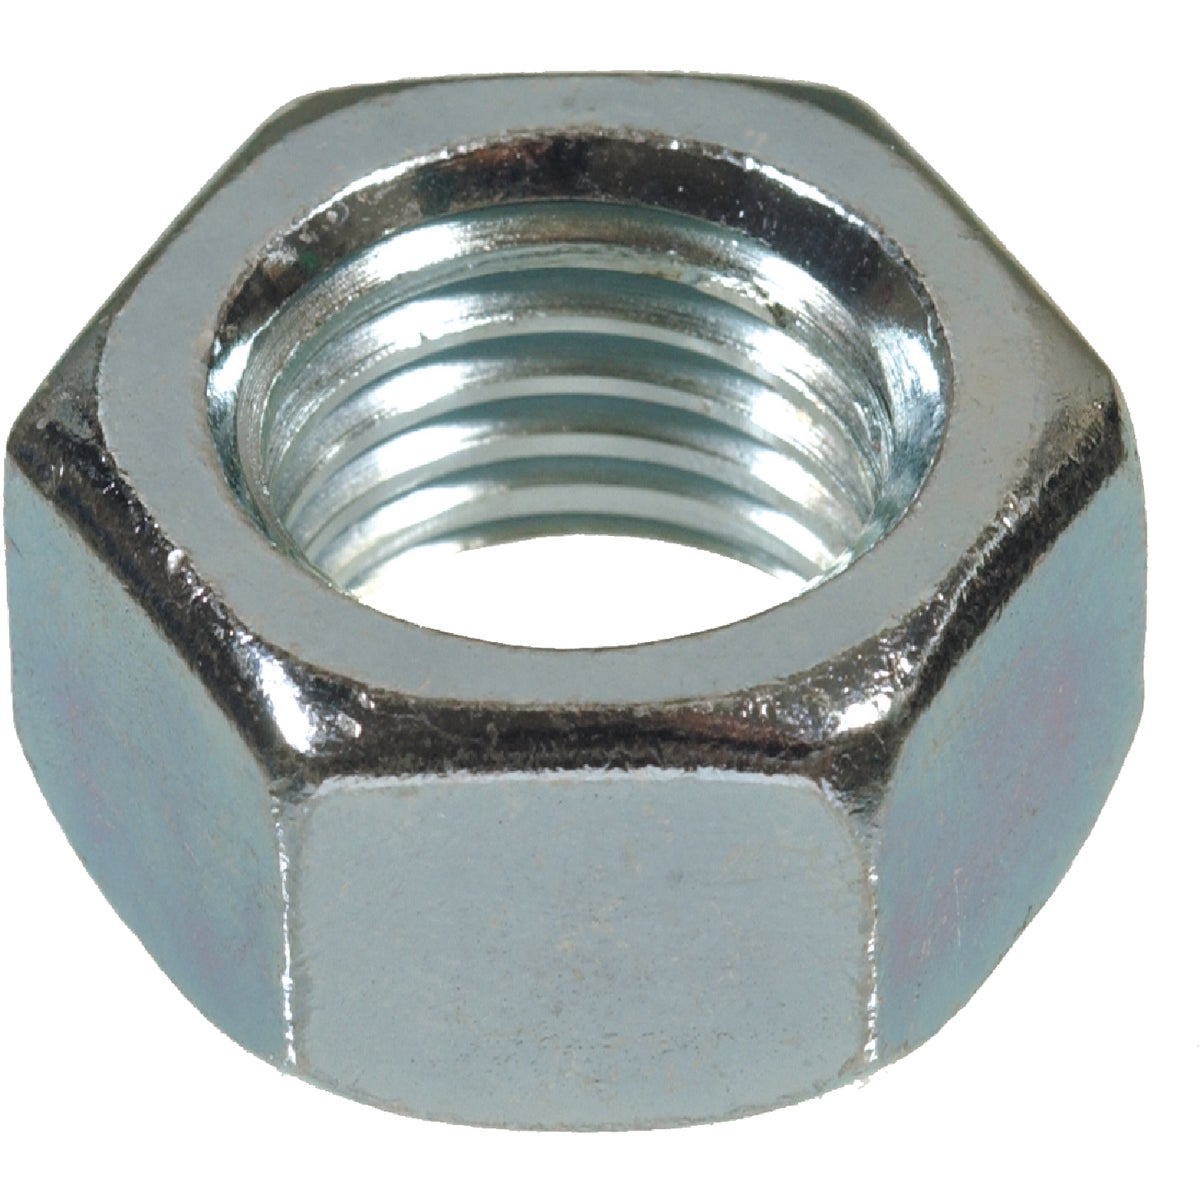 50PC 1/2-13 CRS HEX NUT